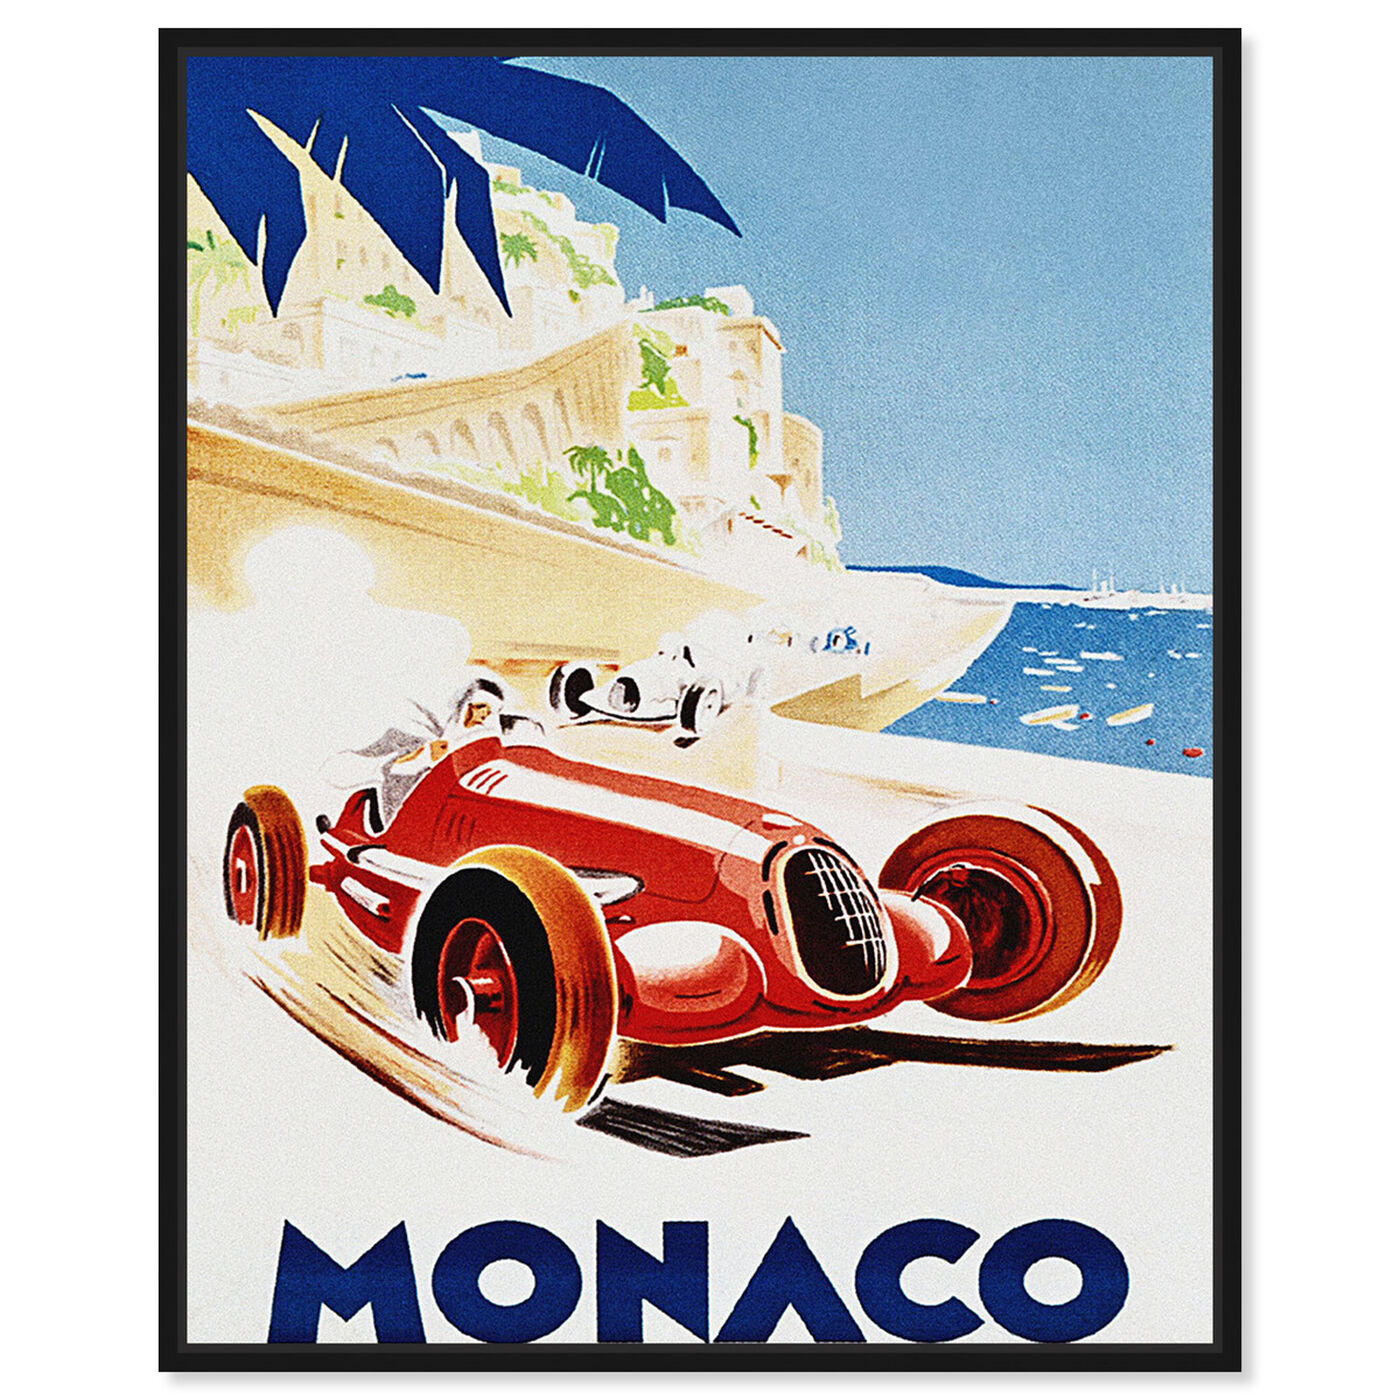 Front view of Monaco Grand Prix featuring advertising and posters art.